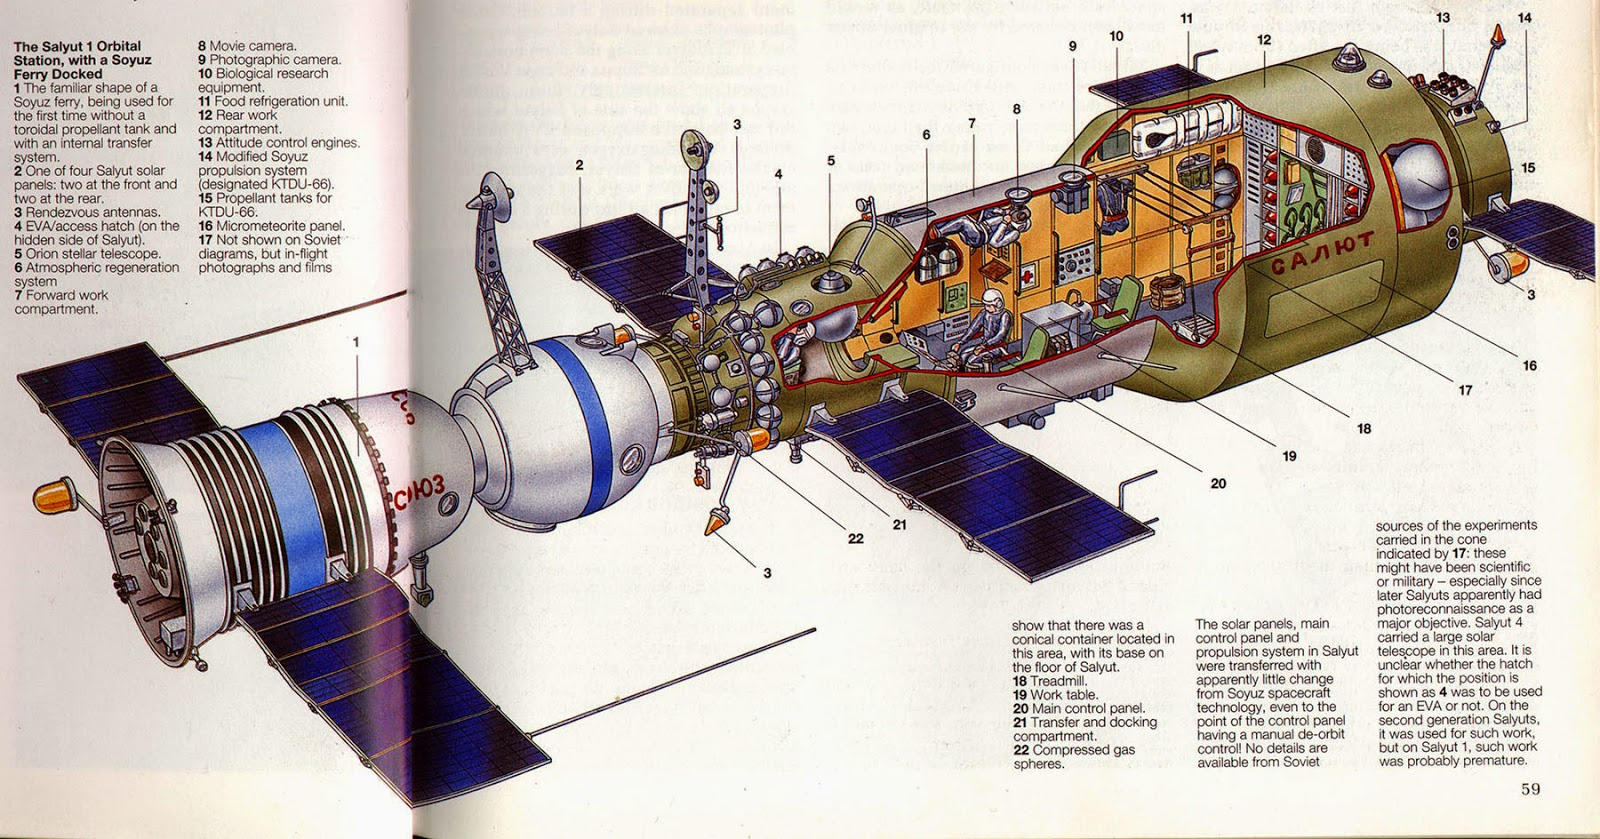 salyut 1 space station illustration - photo #3